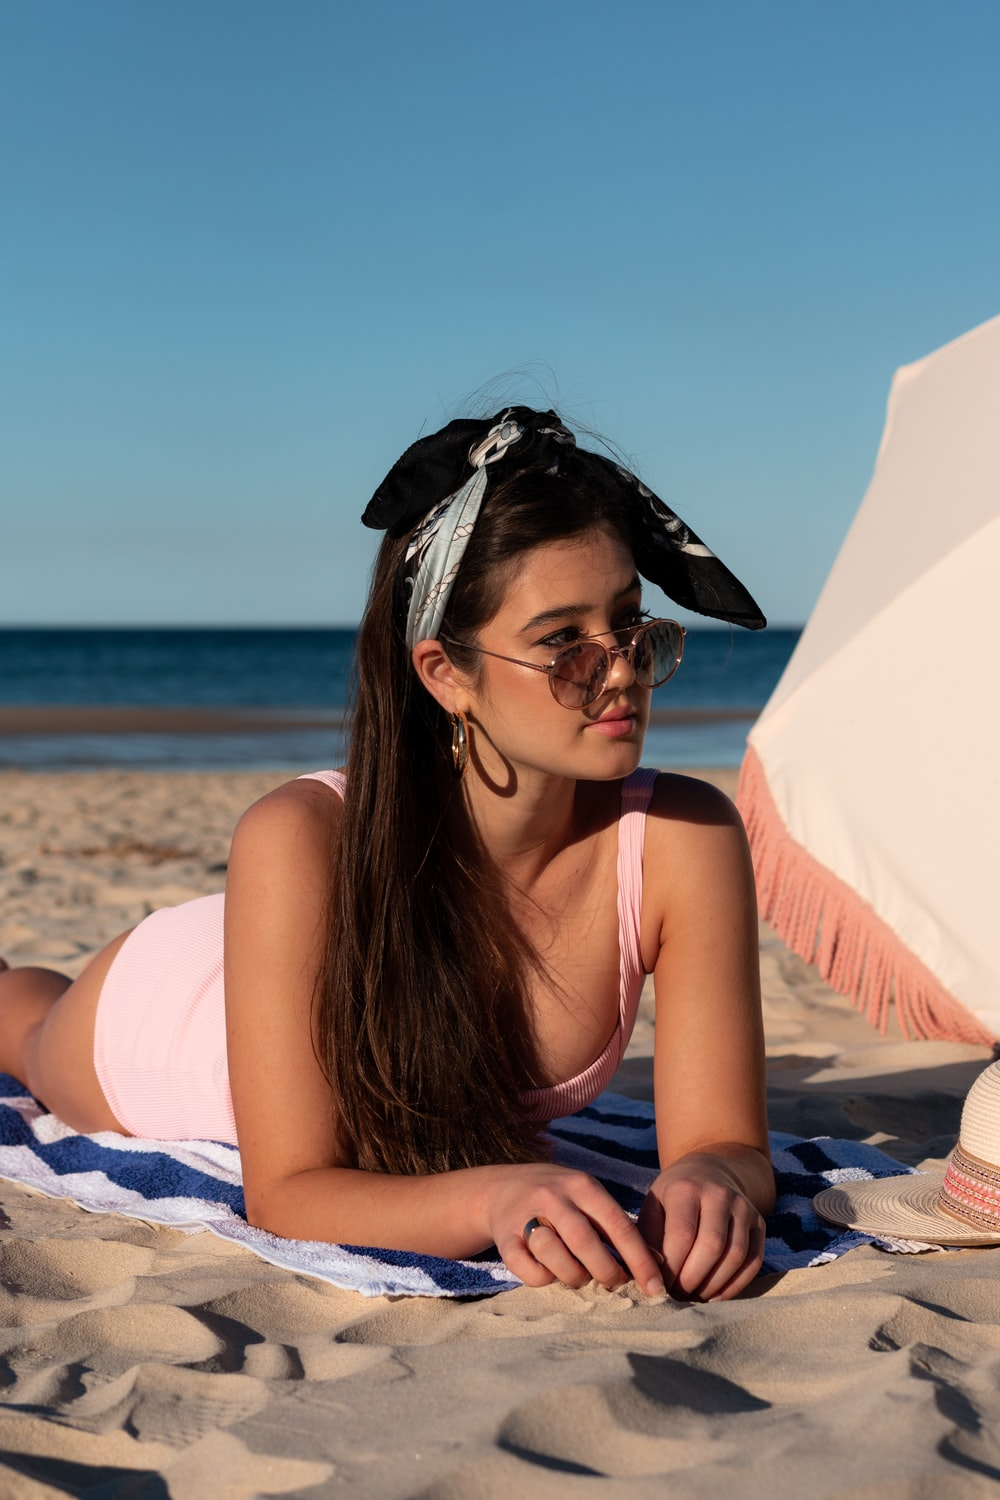 woman in pink tank top sitting on white textile on beach during daytime